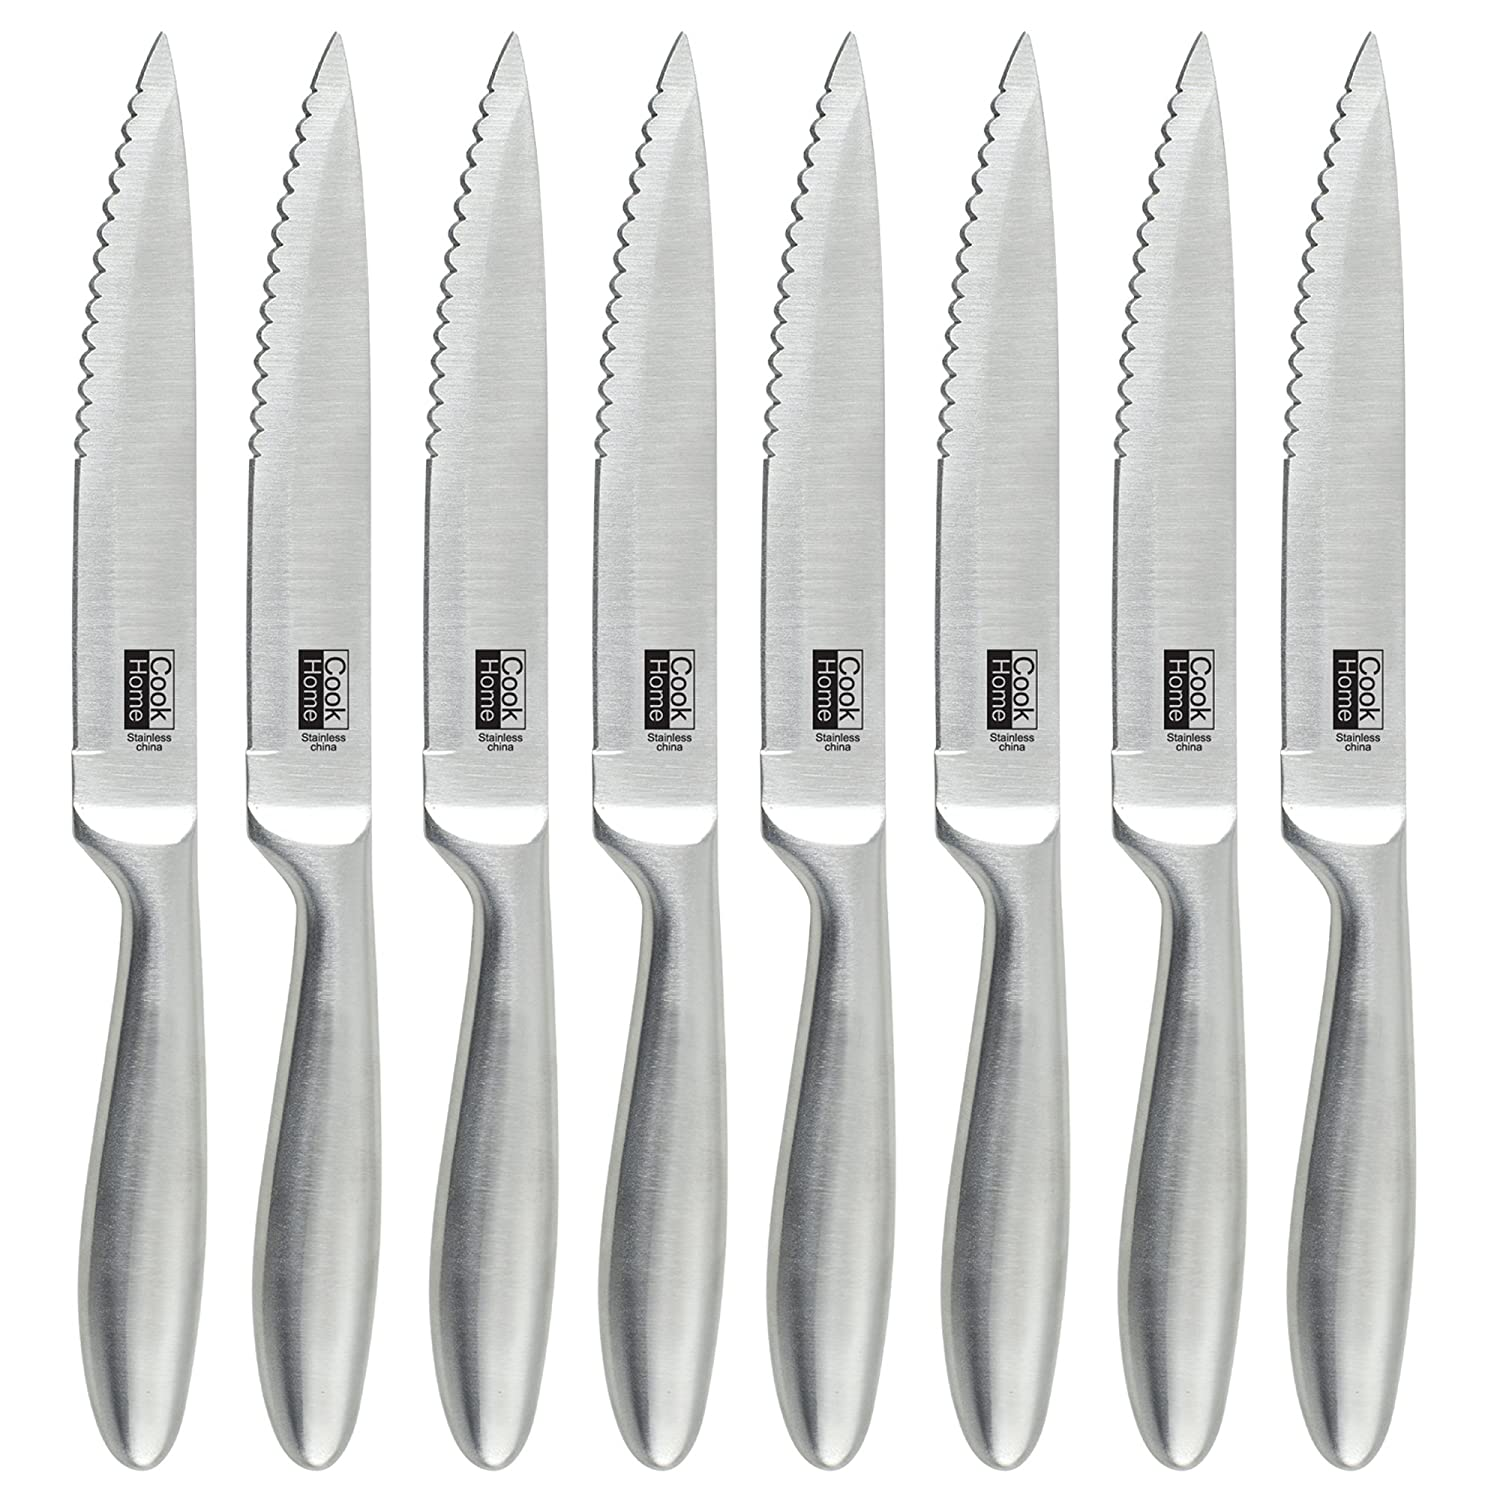 Cook N Home NC-00372 10-Inch, One Const 8-Piece Stainless Steel Serrated Steak Knife Set, Silver